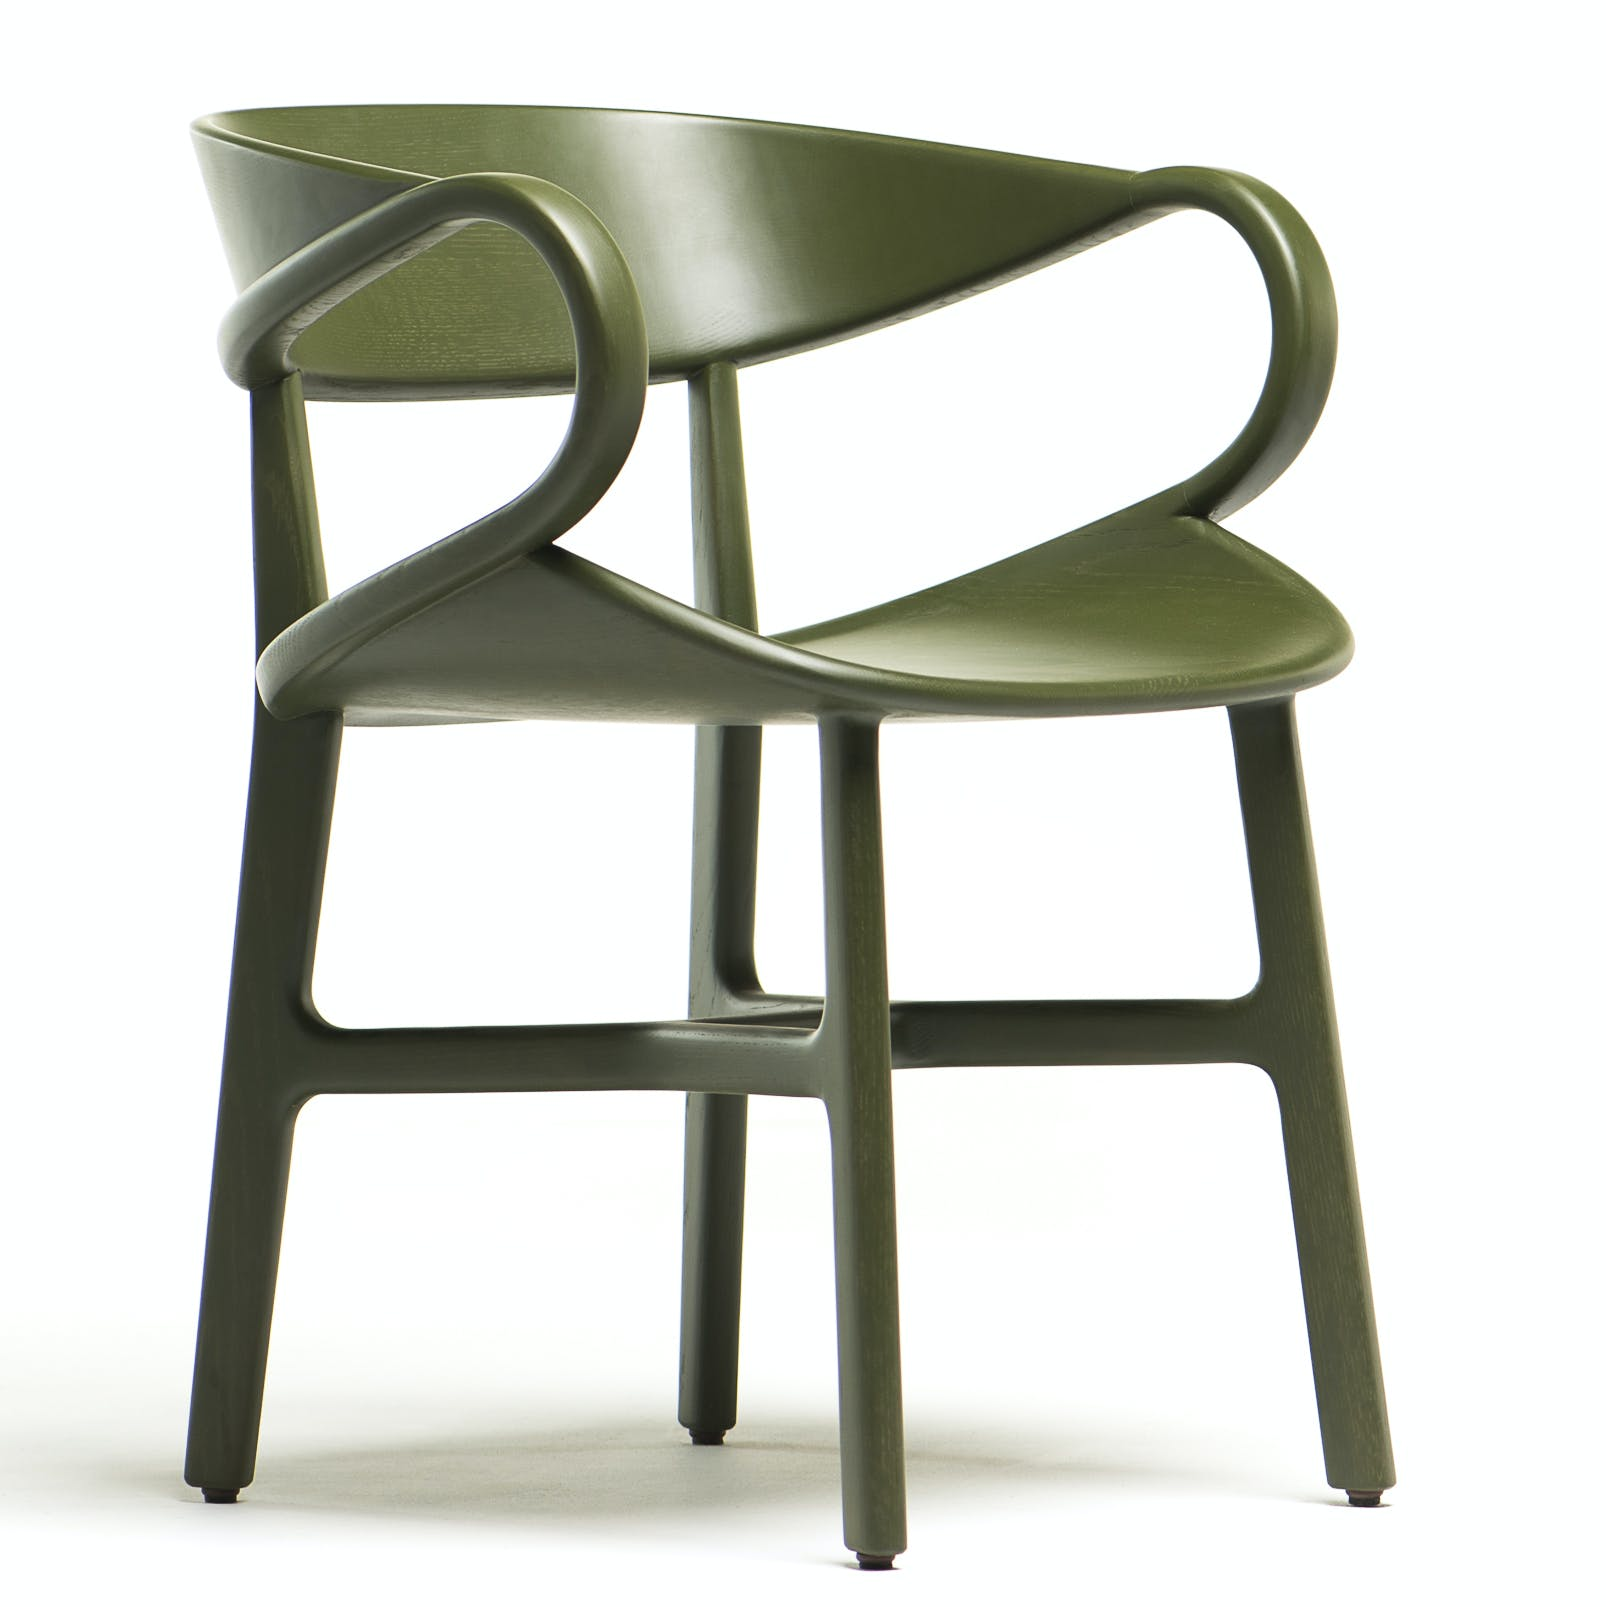 De La Espada Nichetto Vivien Dining Chair Green Thumbnail Haute Living